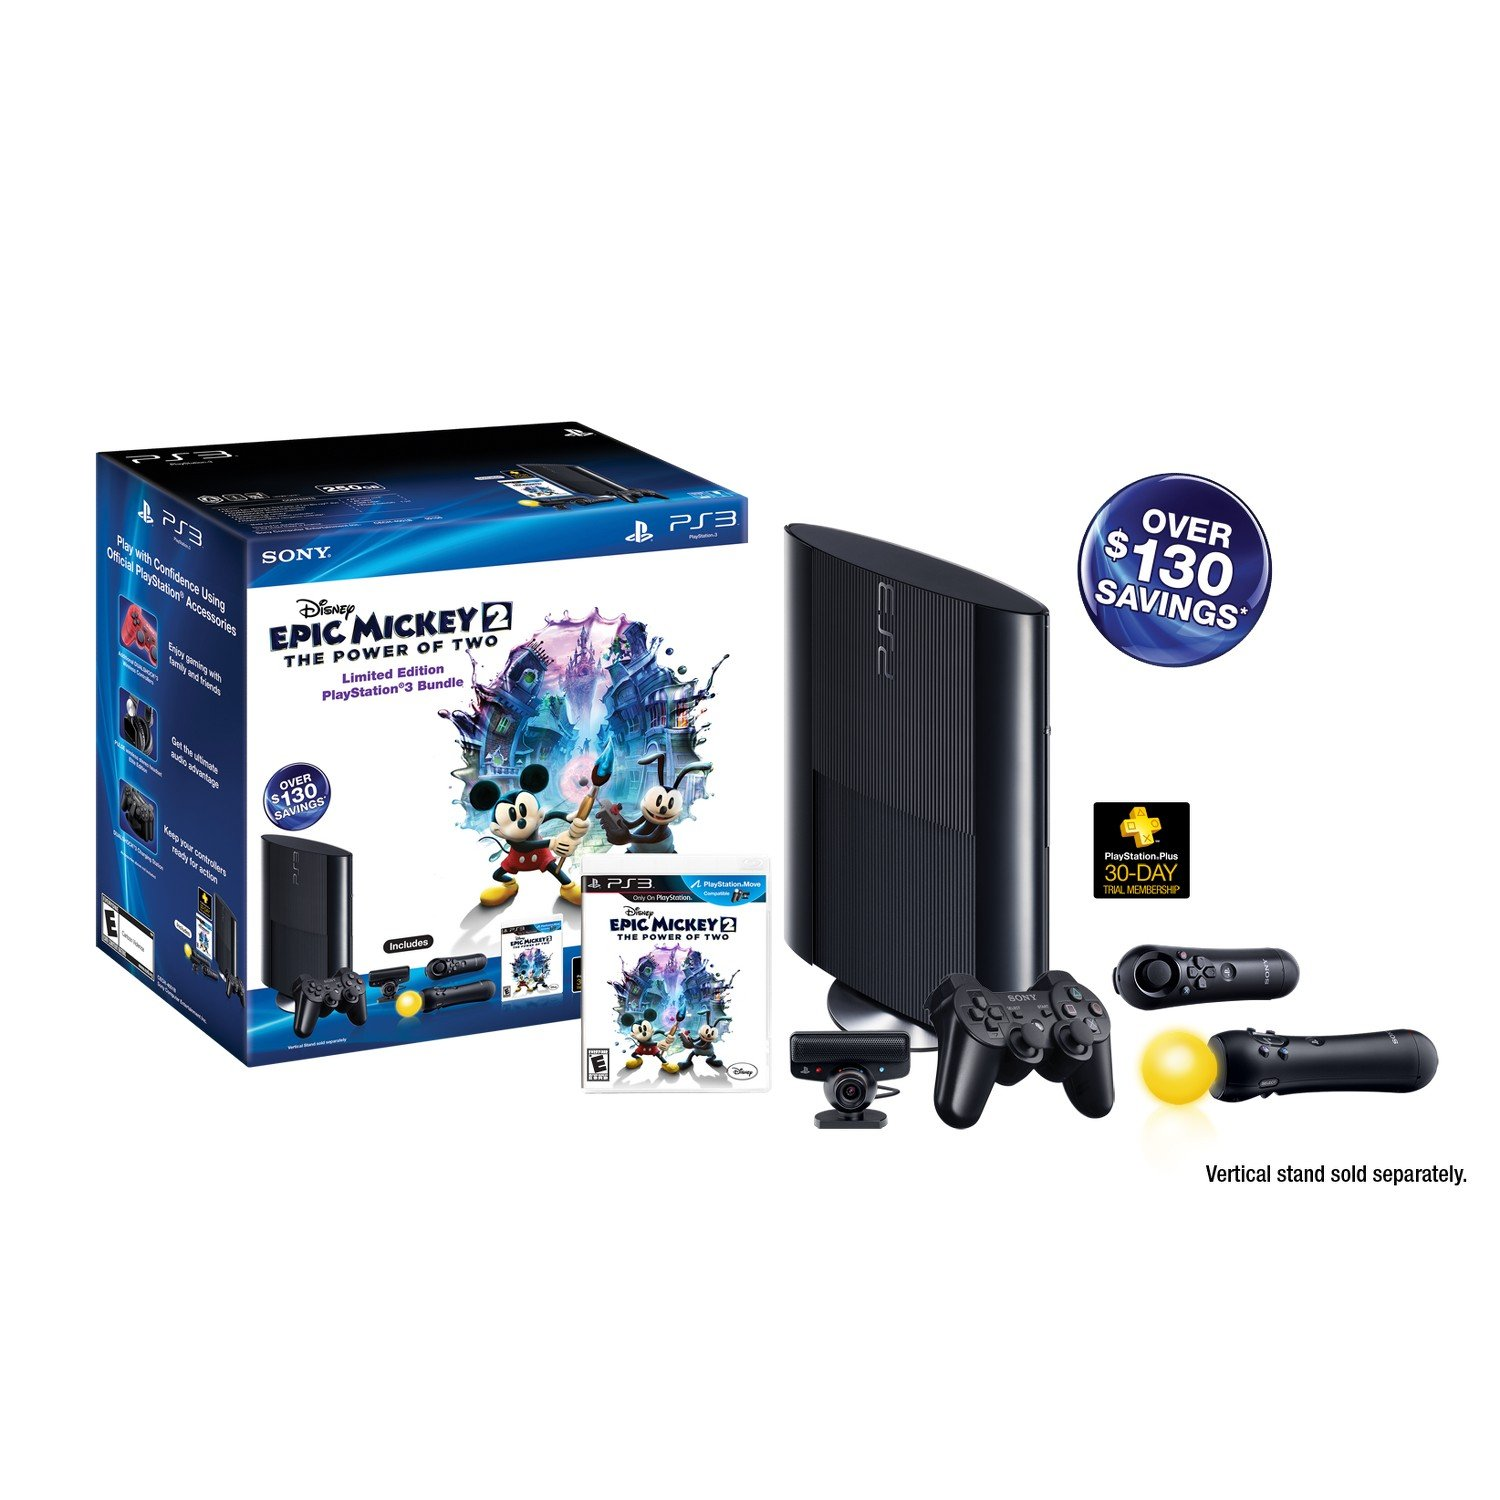 PS3 Slim 250GB Epic Mickey: Power of 2 Bundle (PlayStation 3)